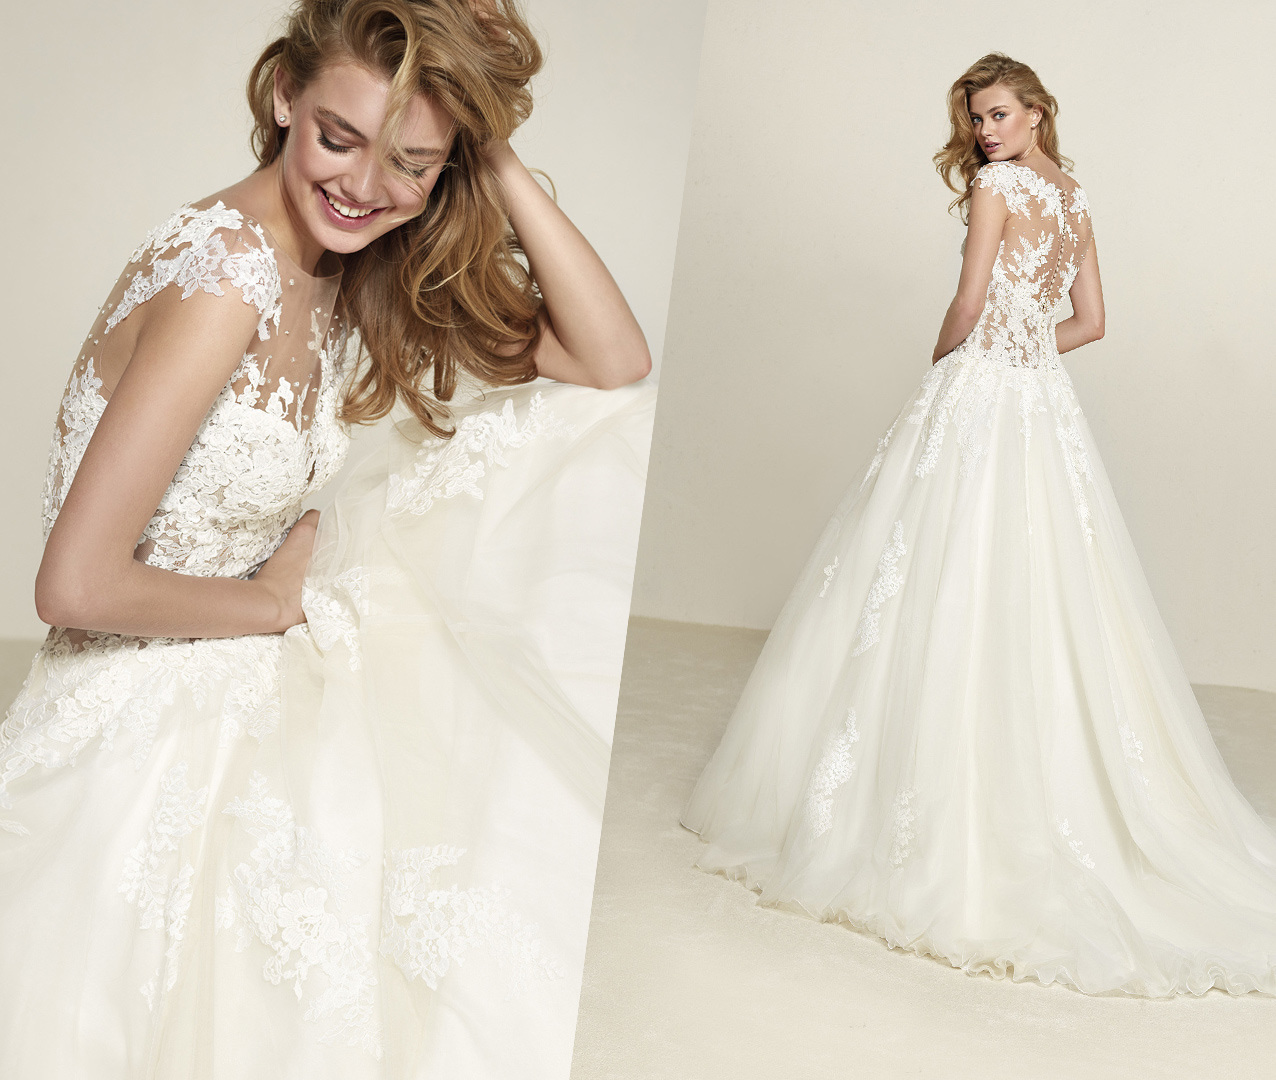 Trendy Soft and Flowing Wedding Dress